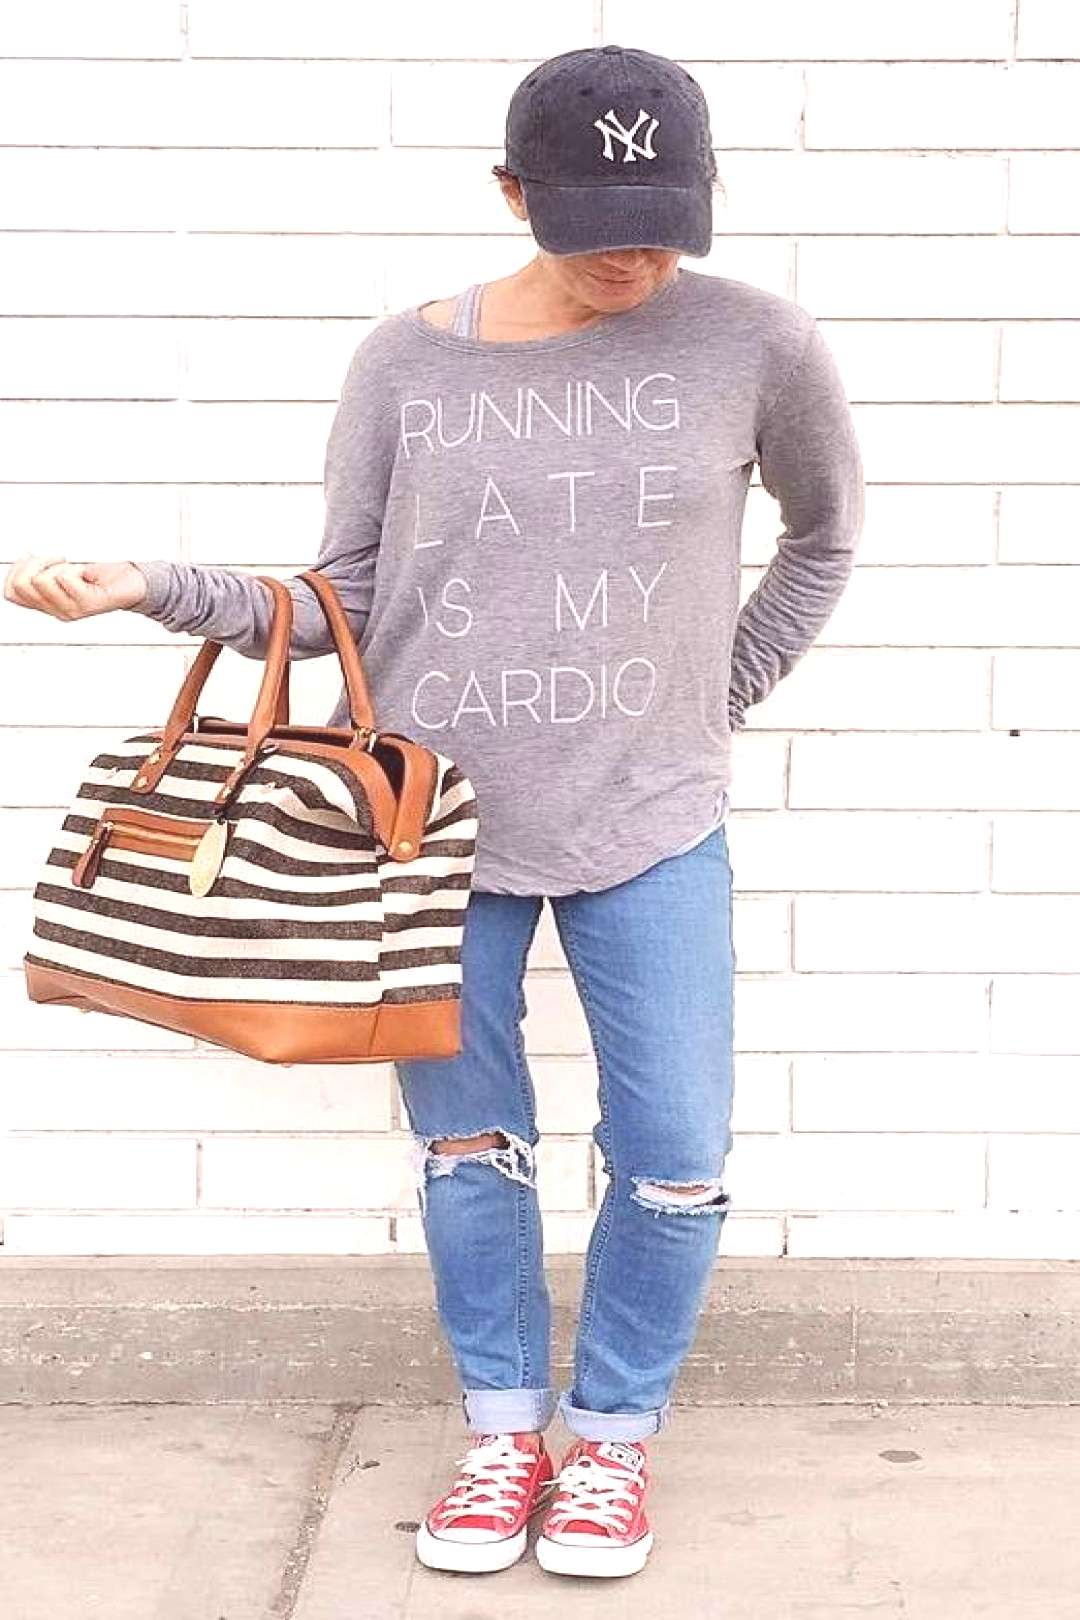 Keeping It Casual 40+ Ways To Rock Your Fall Style,